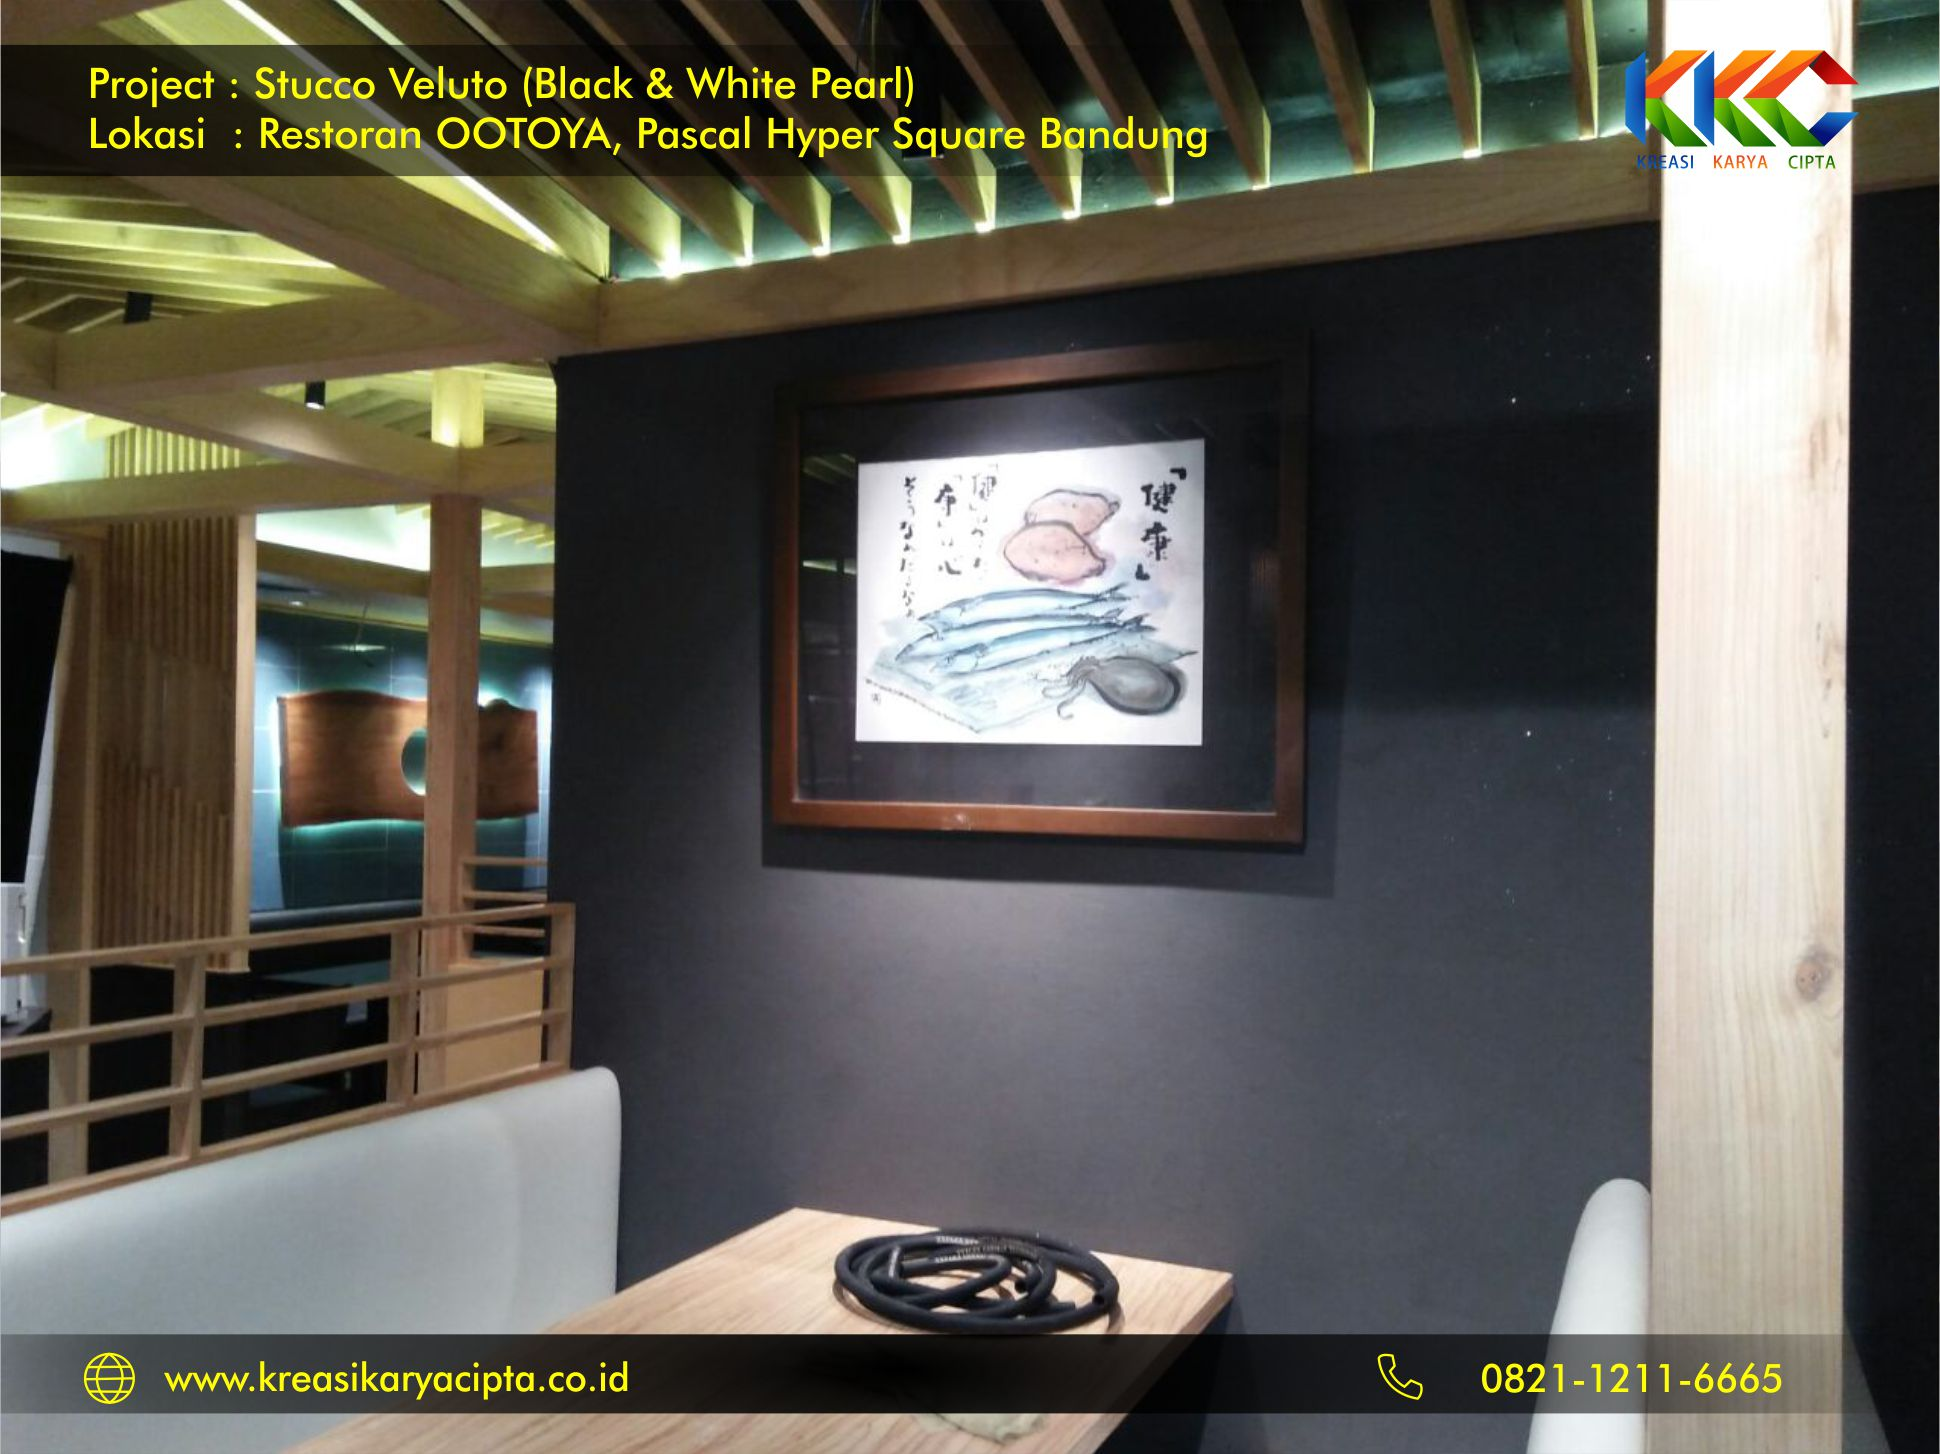 Project Cat Stucco Veluto White and Black Pearl Restoran OOTOYA Pascal Hyper Square Bandung 2